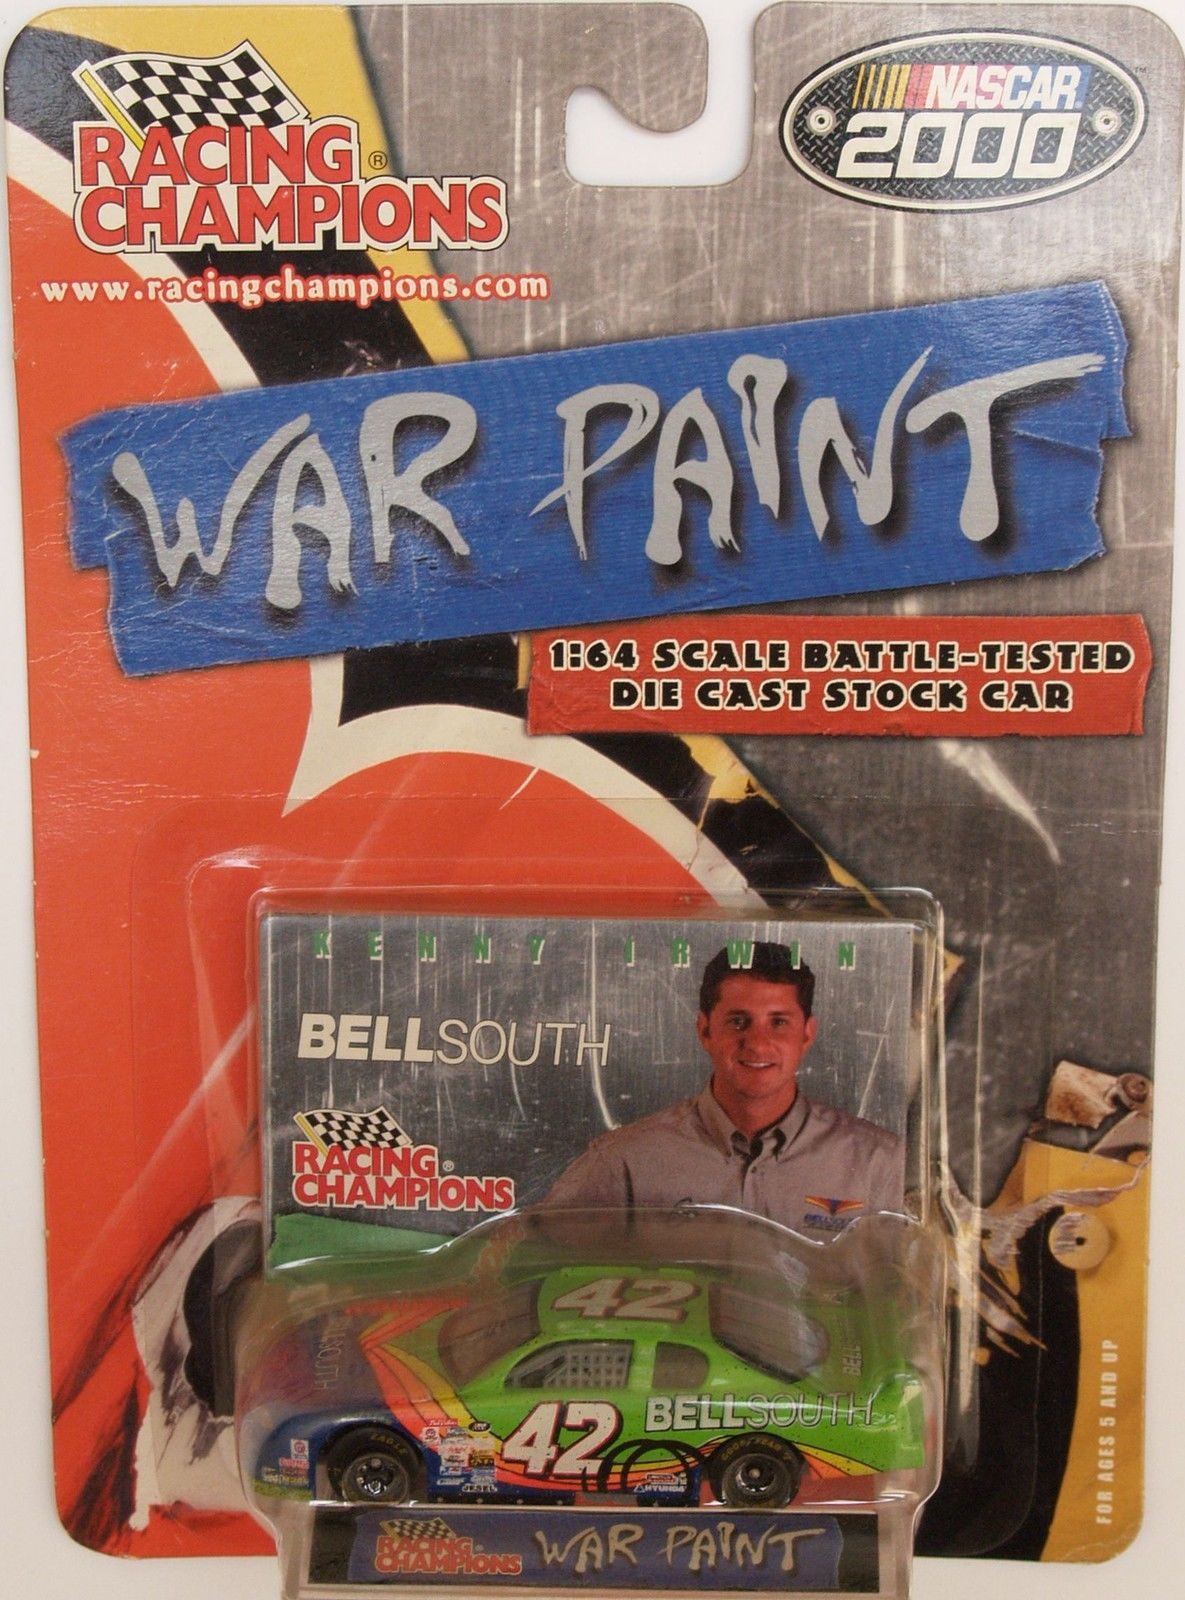 2000 RACING CHAMPIONS NASCAR - WAR PAINT - #42 BELLSOUTH